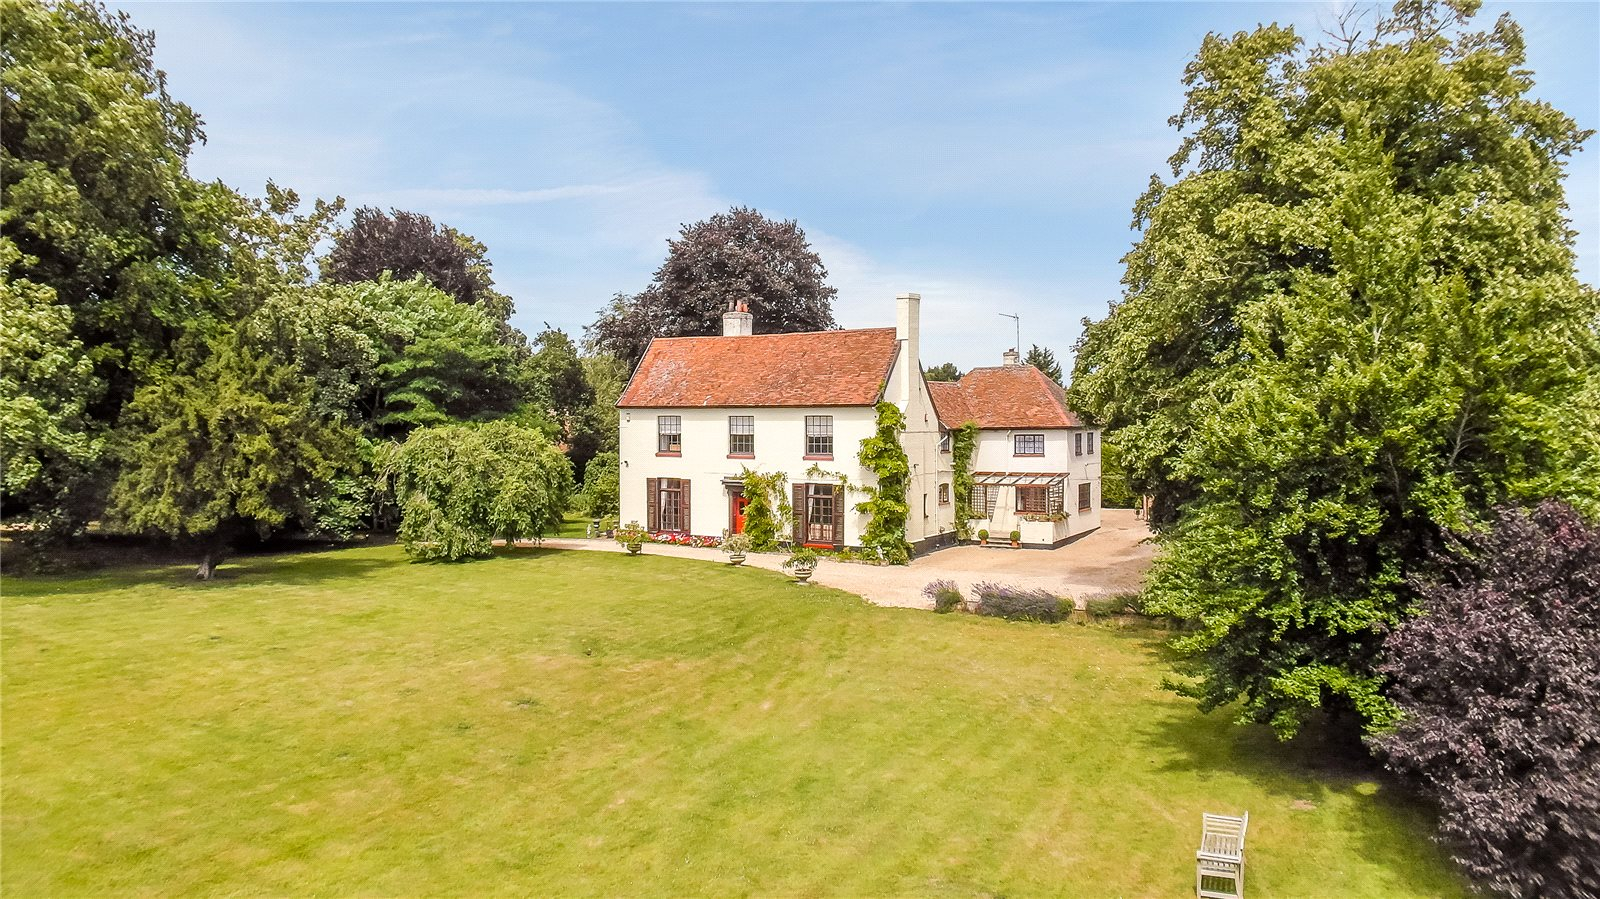 Single Family Home for Sale at Bramford Road, Little Blakenham, Ipswich, IP8 Ipswich, England